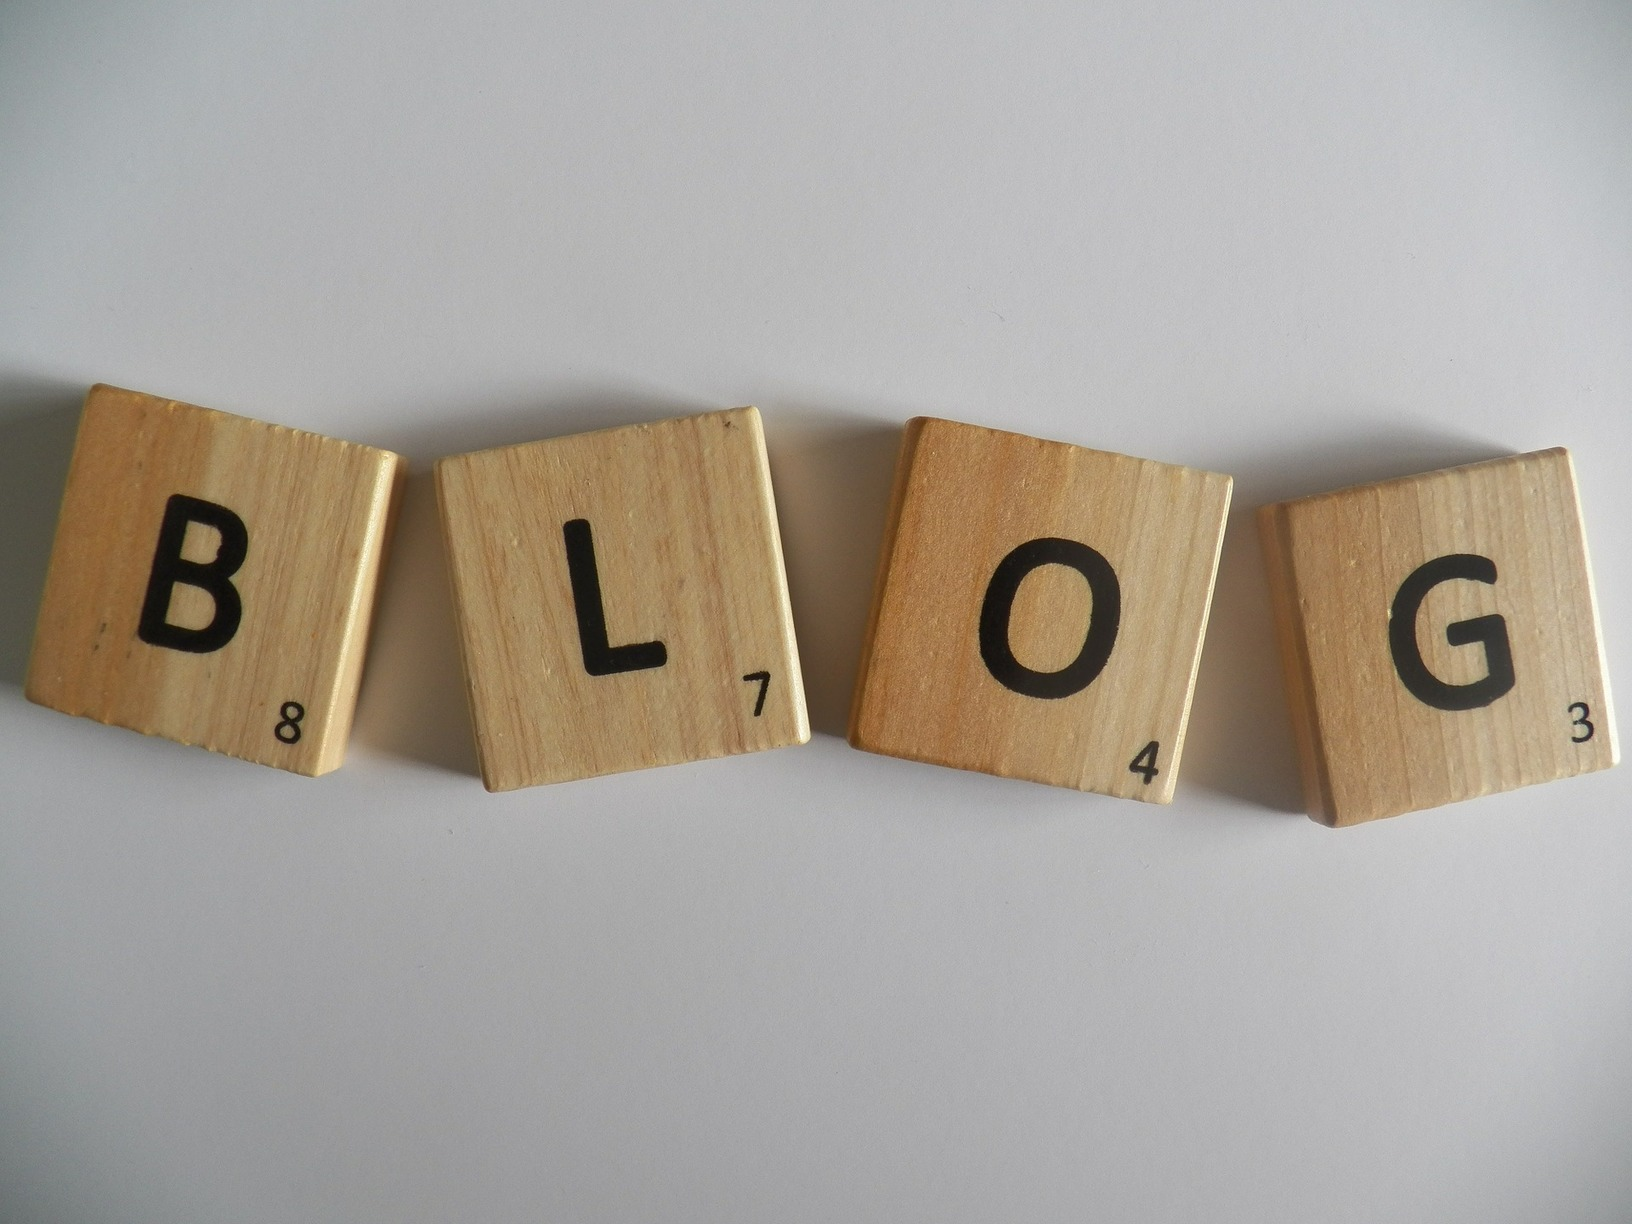 Leveraging Bloggers For Sustainable Branding, The Circular Economy